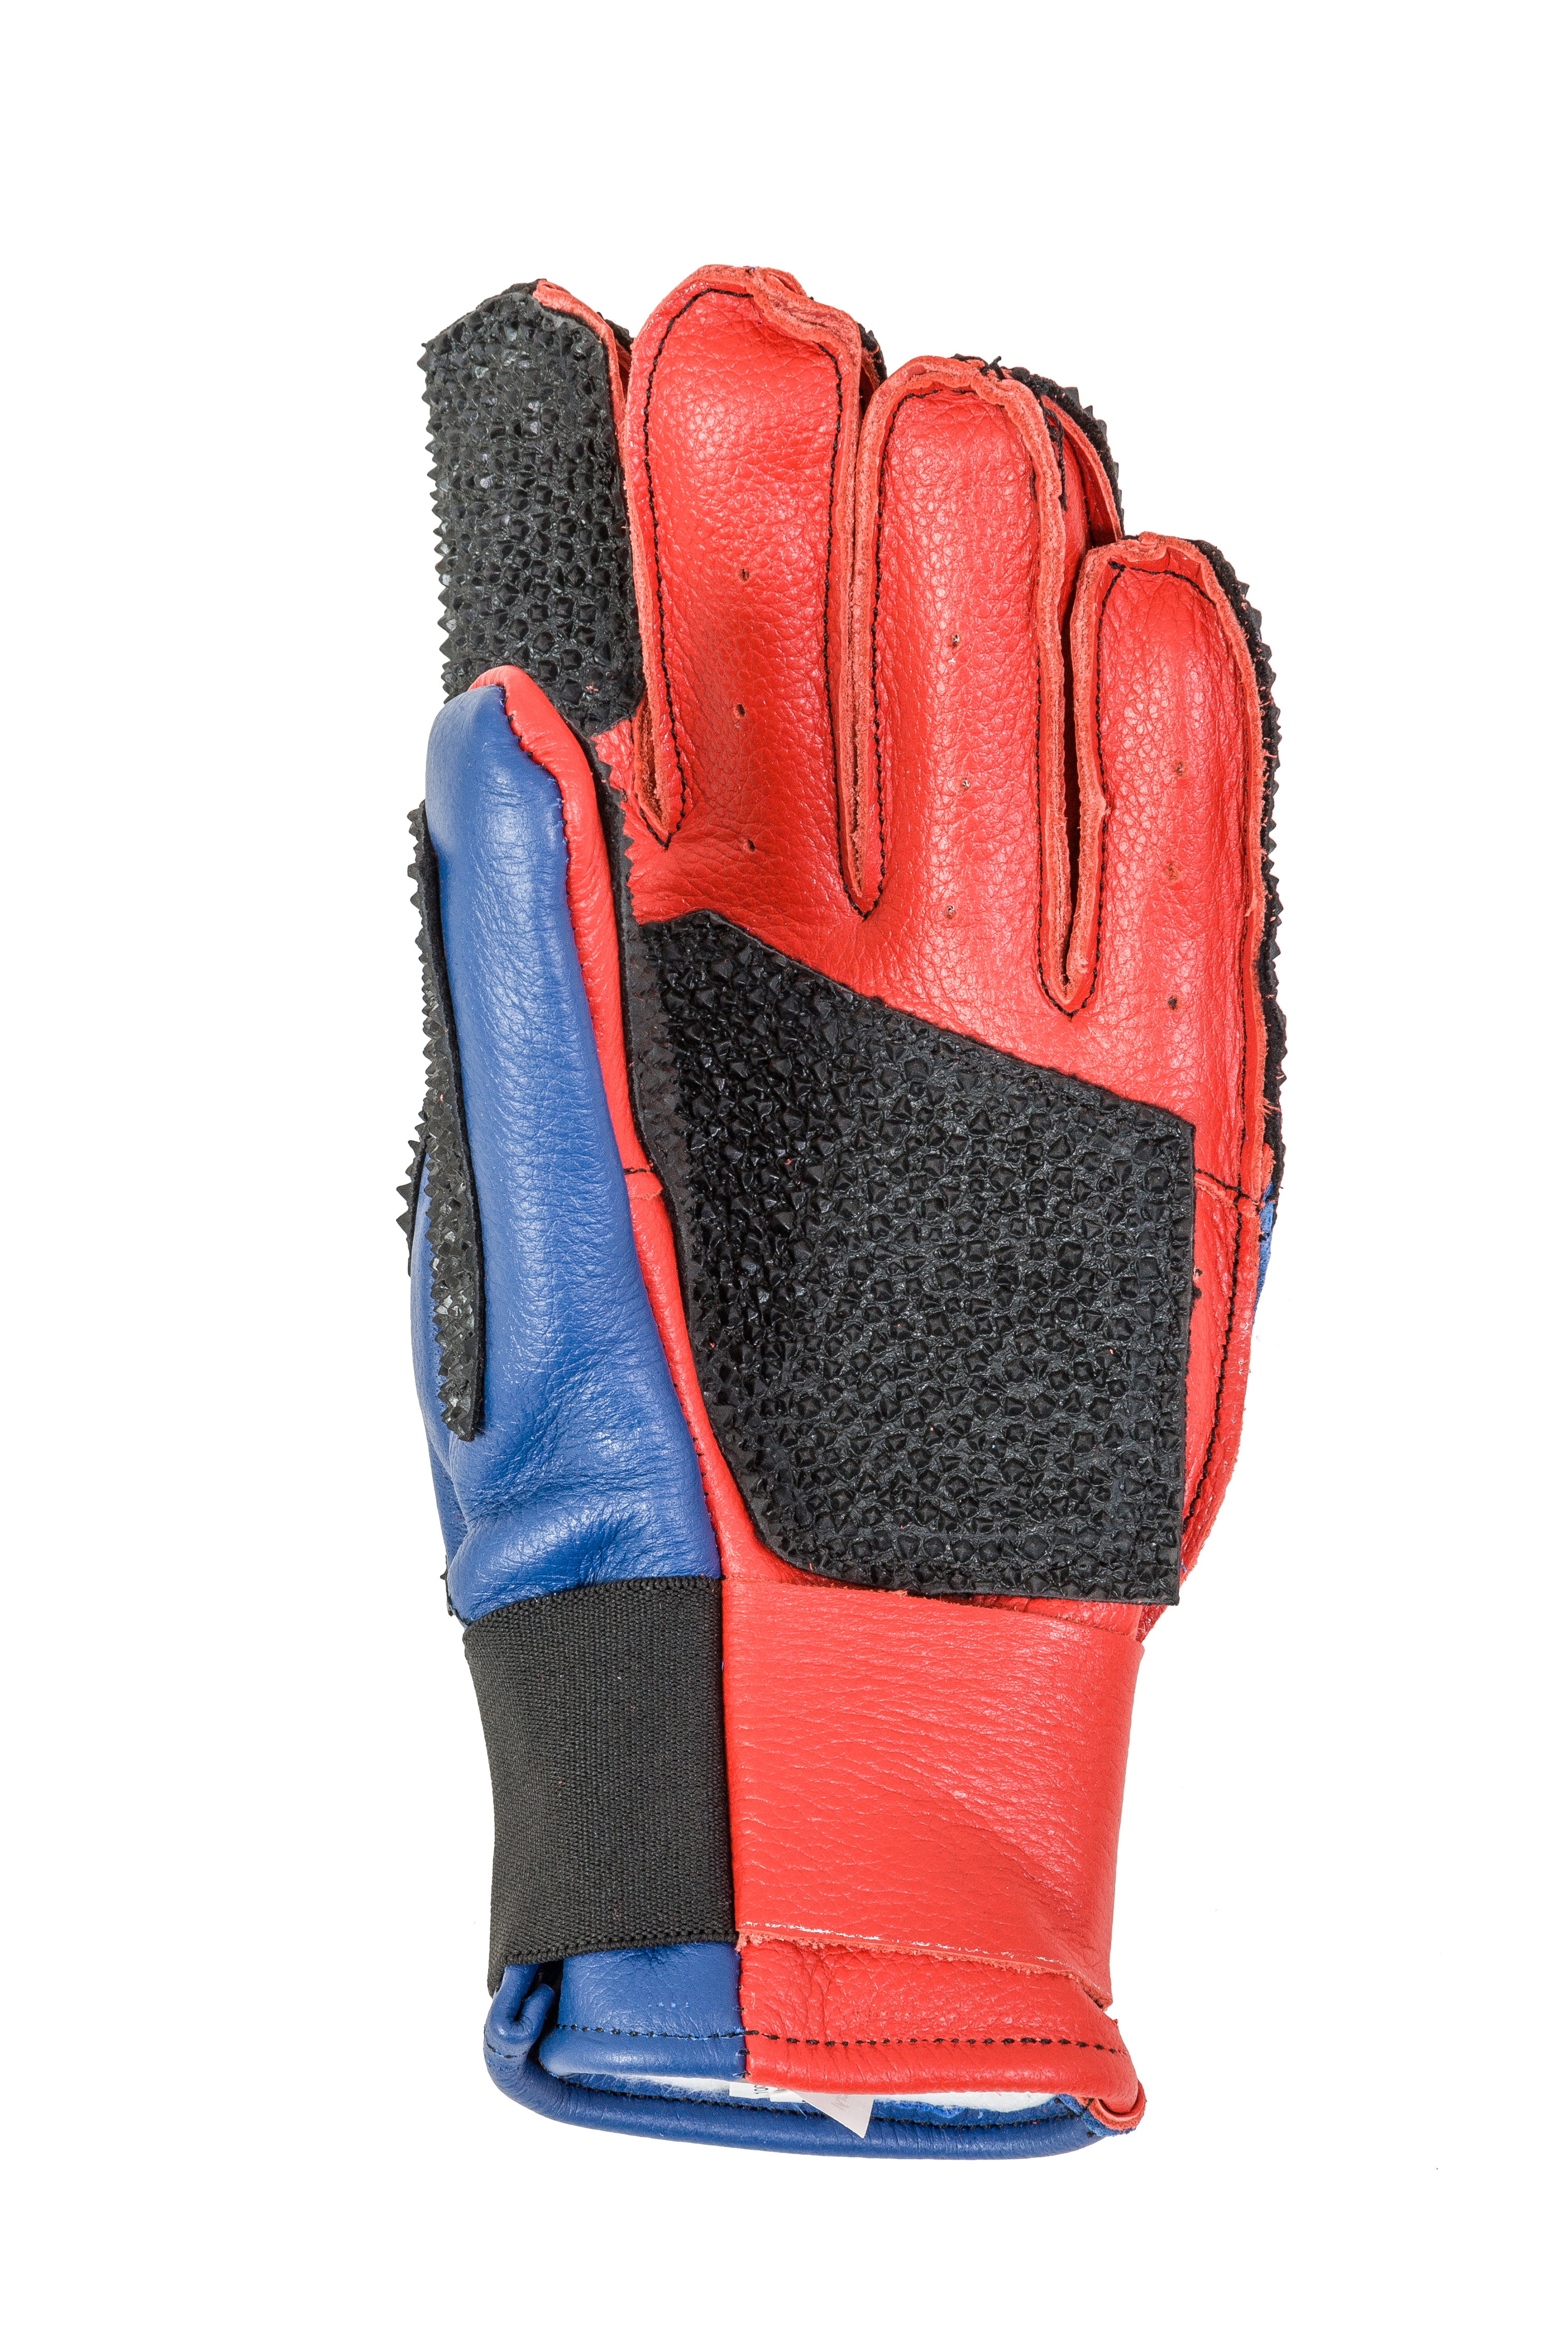 Centaur Standard F full finger padded target shooting glove - palm view - high resolution